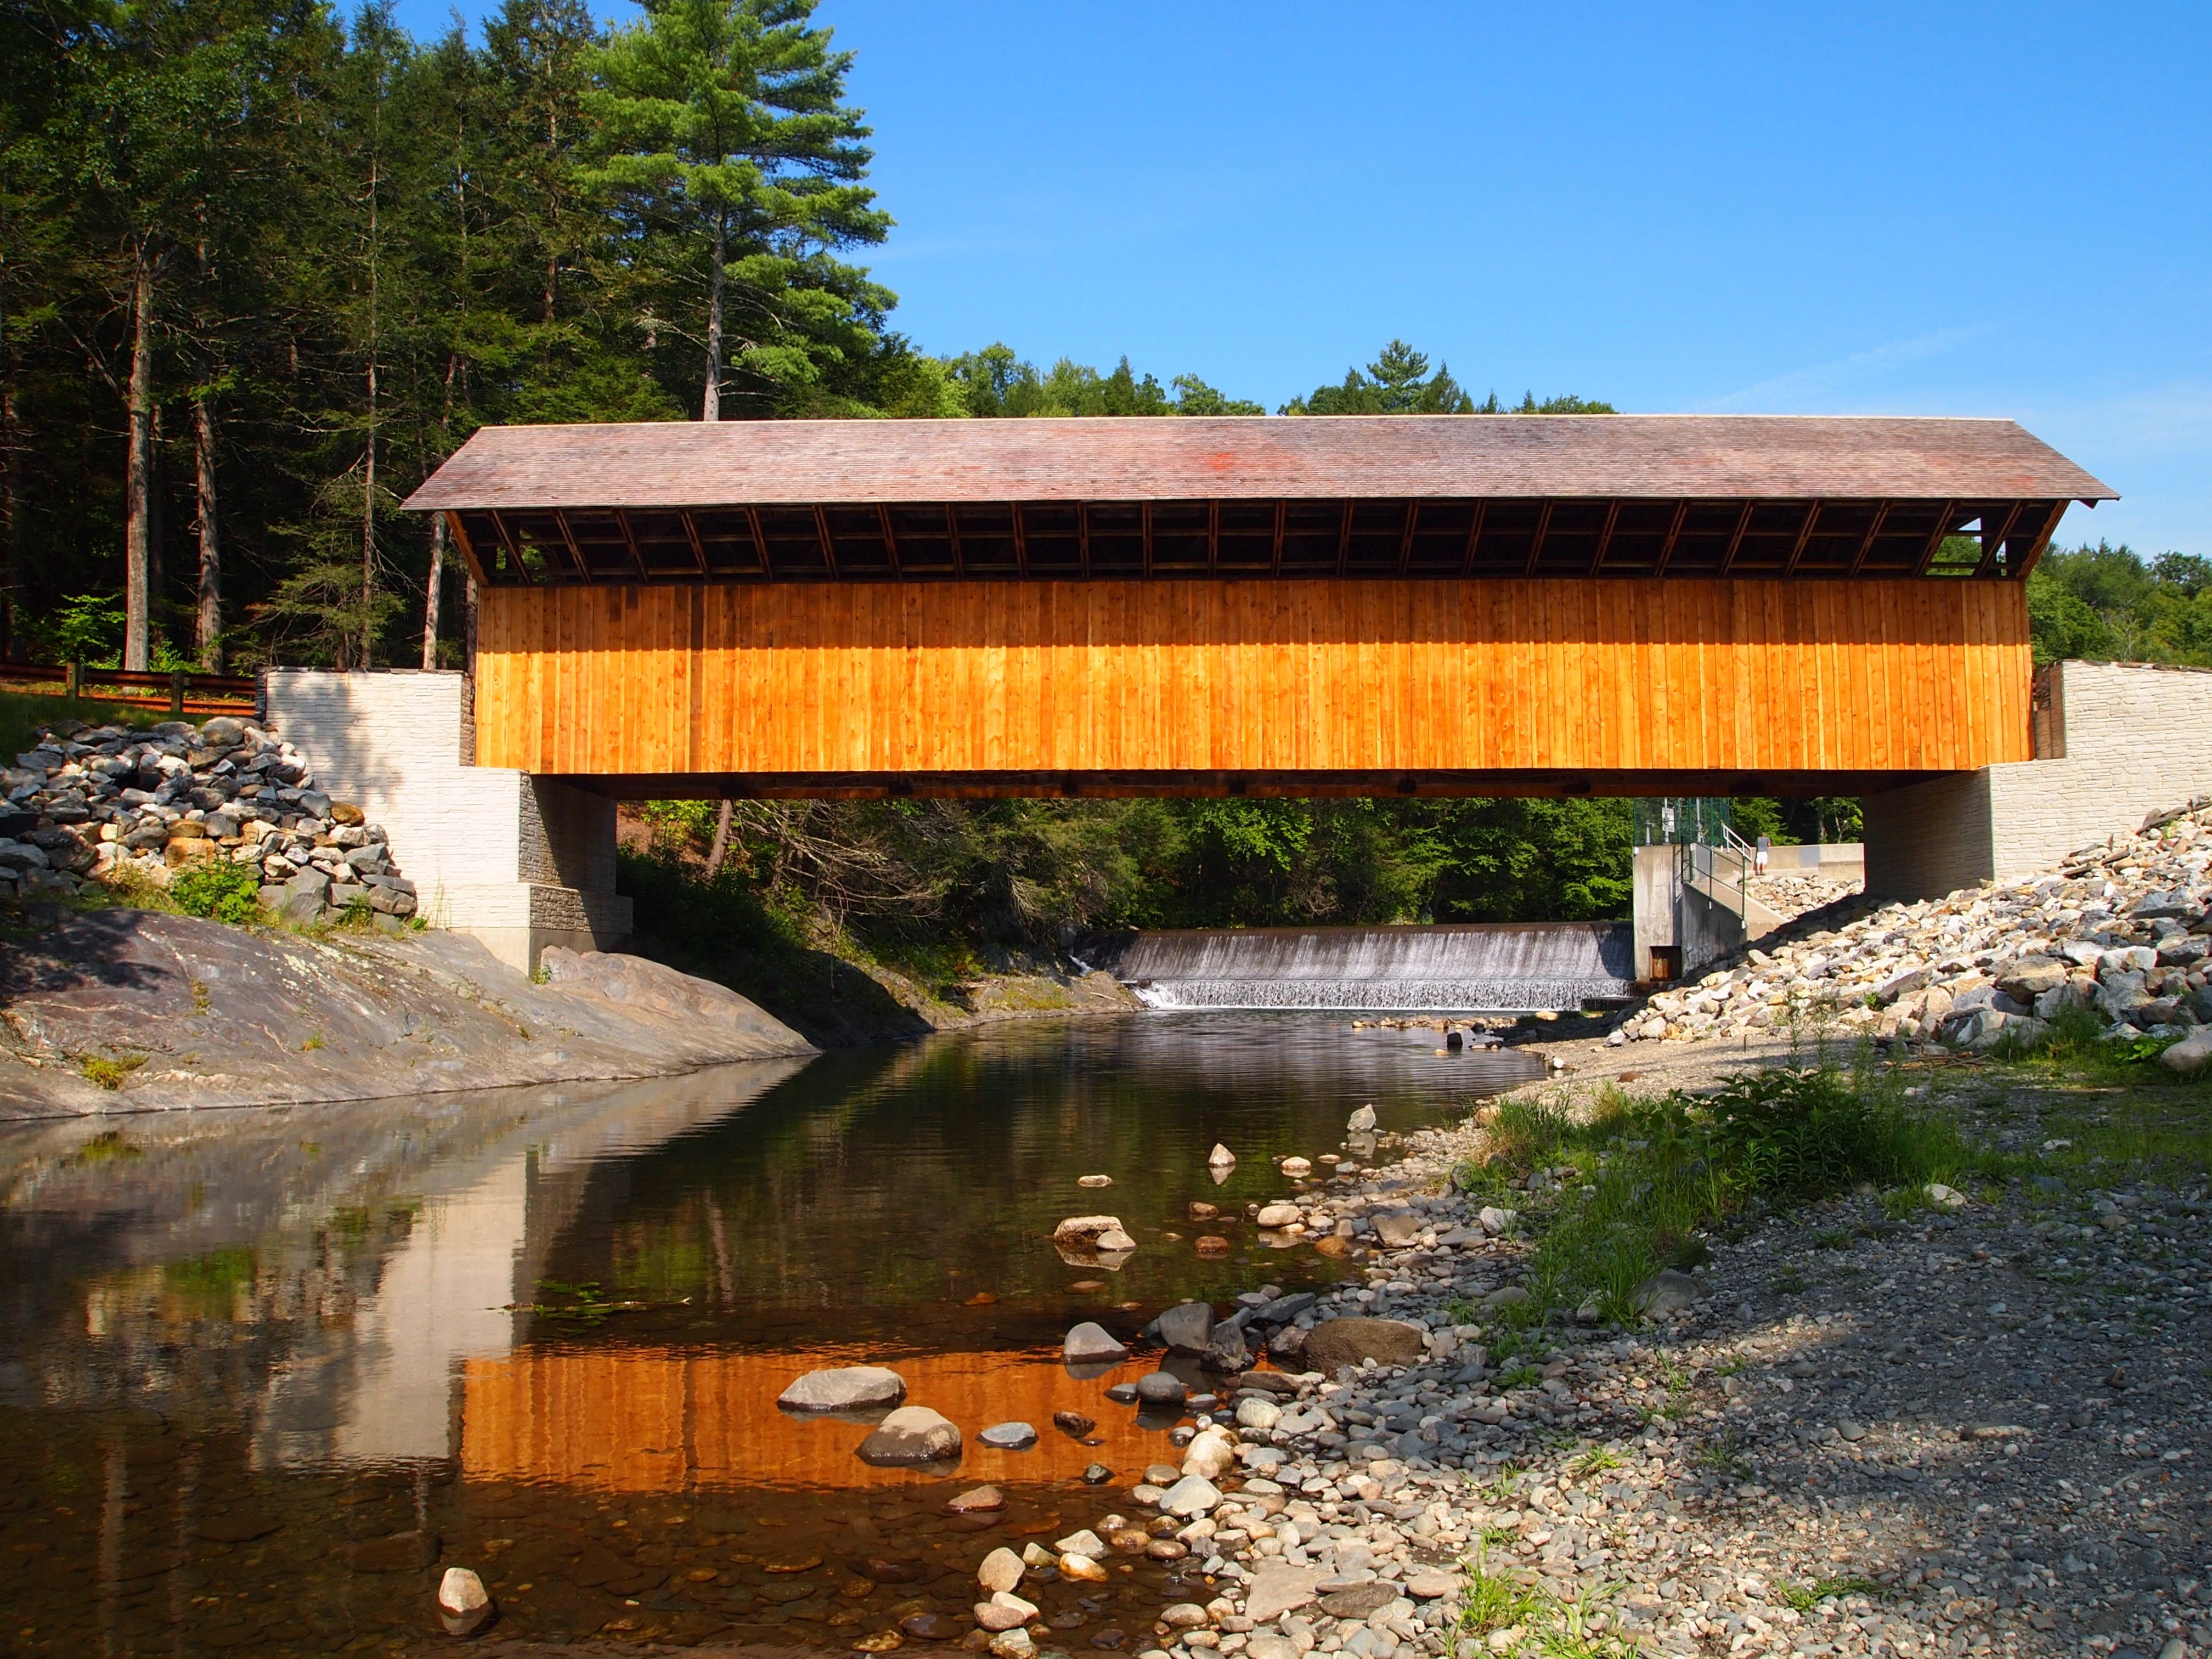 Cruisetours to Canada and New England, 2017 and 2018 ... |New England Covered Bridges Tour